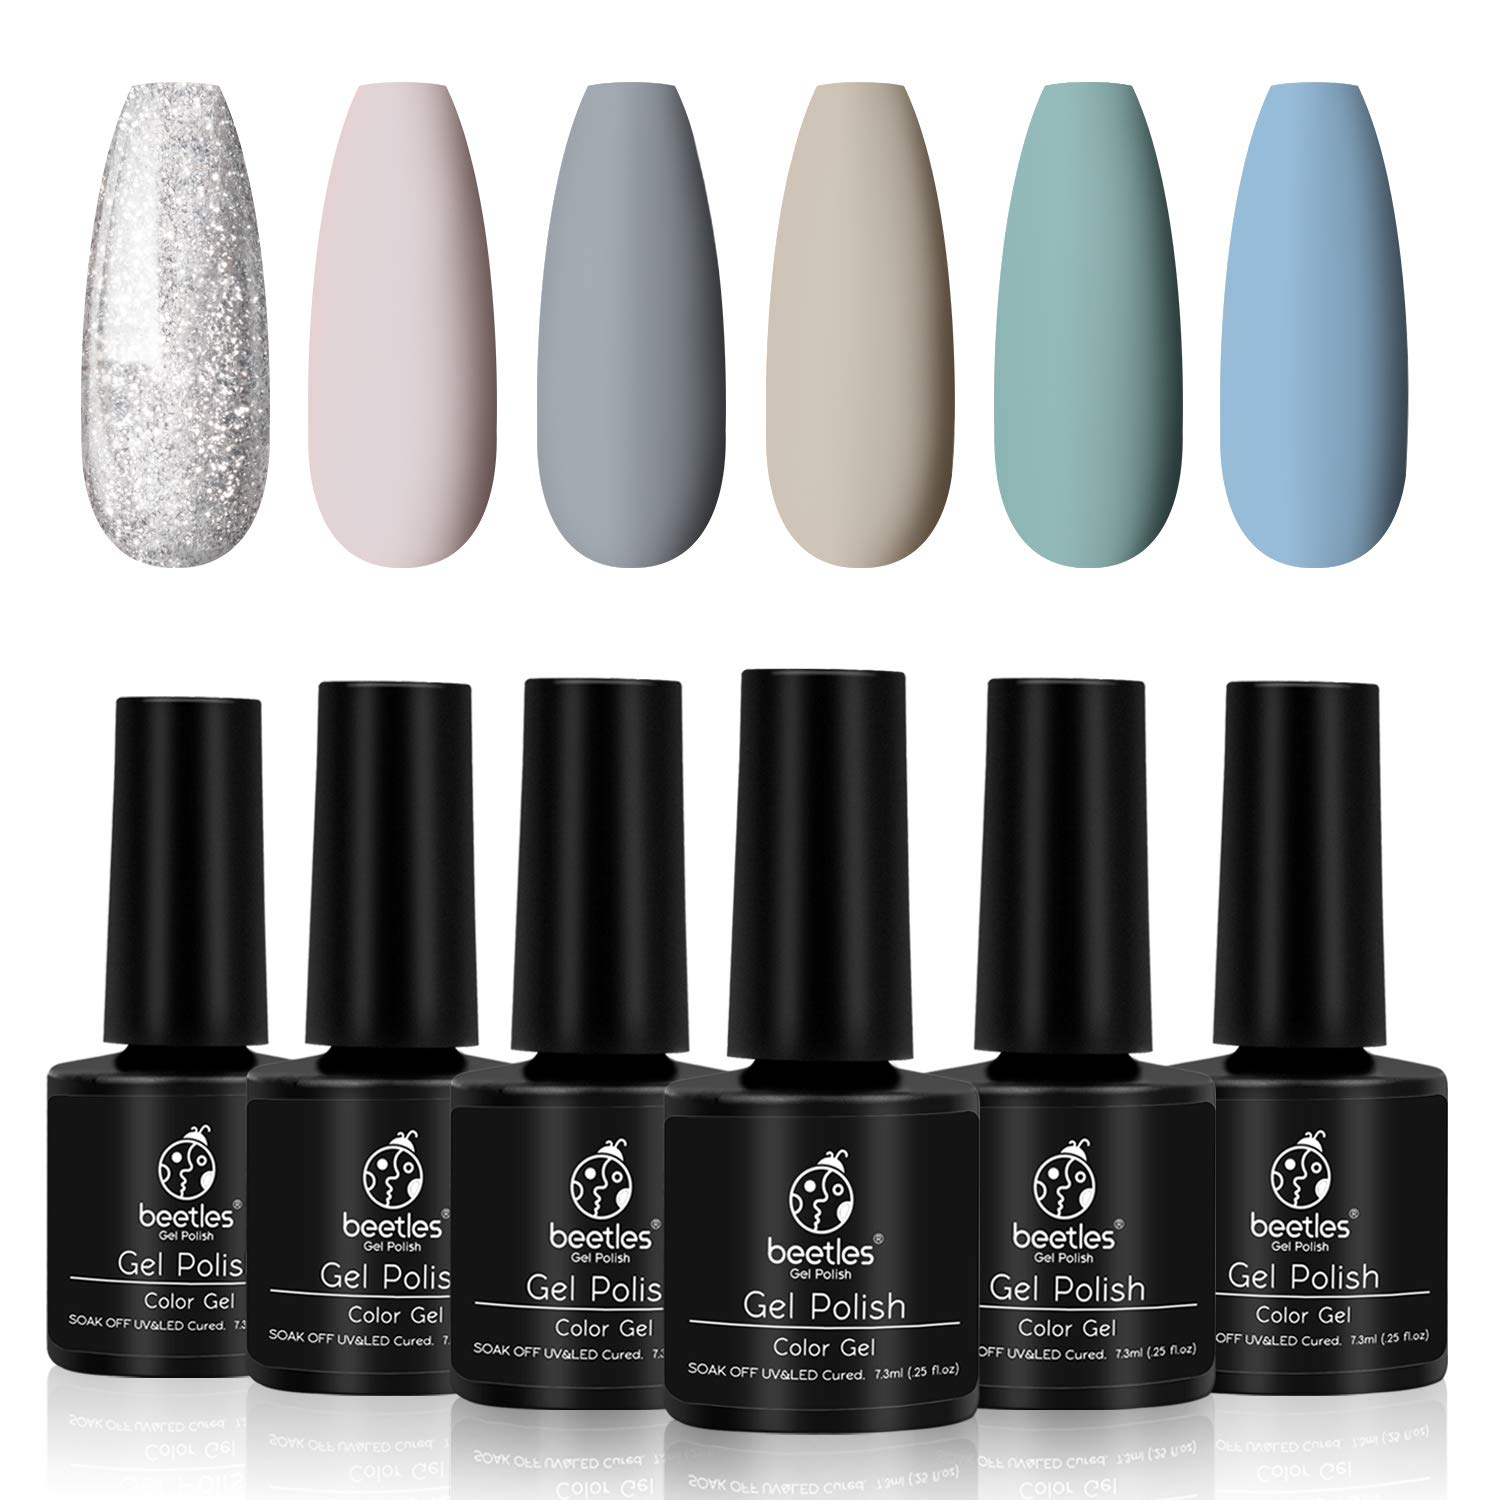 Beetles Cold Glitter Gel Nail Polish Set - 6 Nude Gel Polish Kit Cool Nude Series Nail Polish Gel Nail Kit Nail Art Gift Box, Soak Off LED UV Nail Lamp 7.3ml Each Bottle Christmas Holiday Gift Set